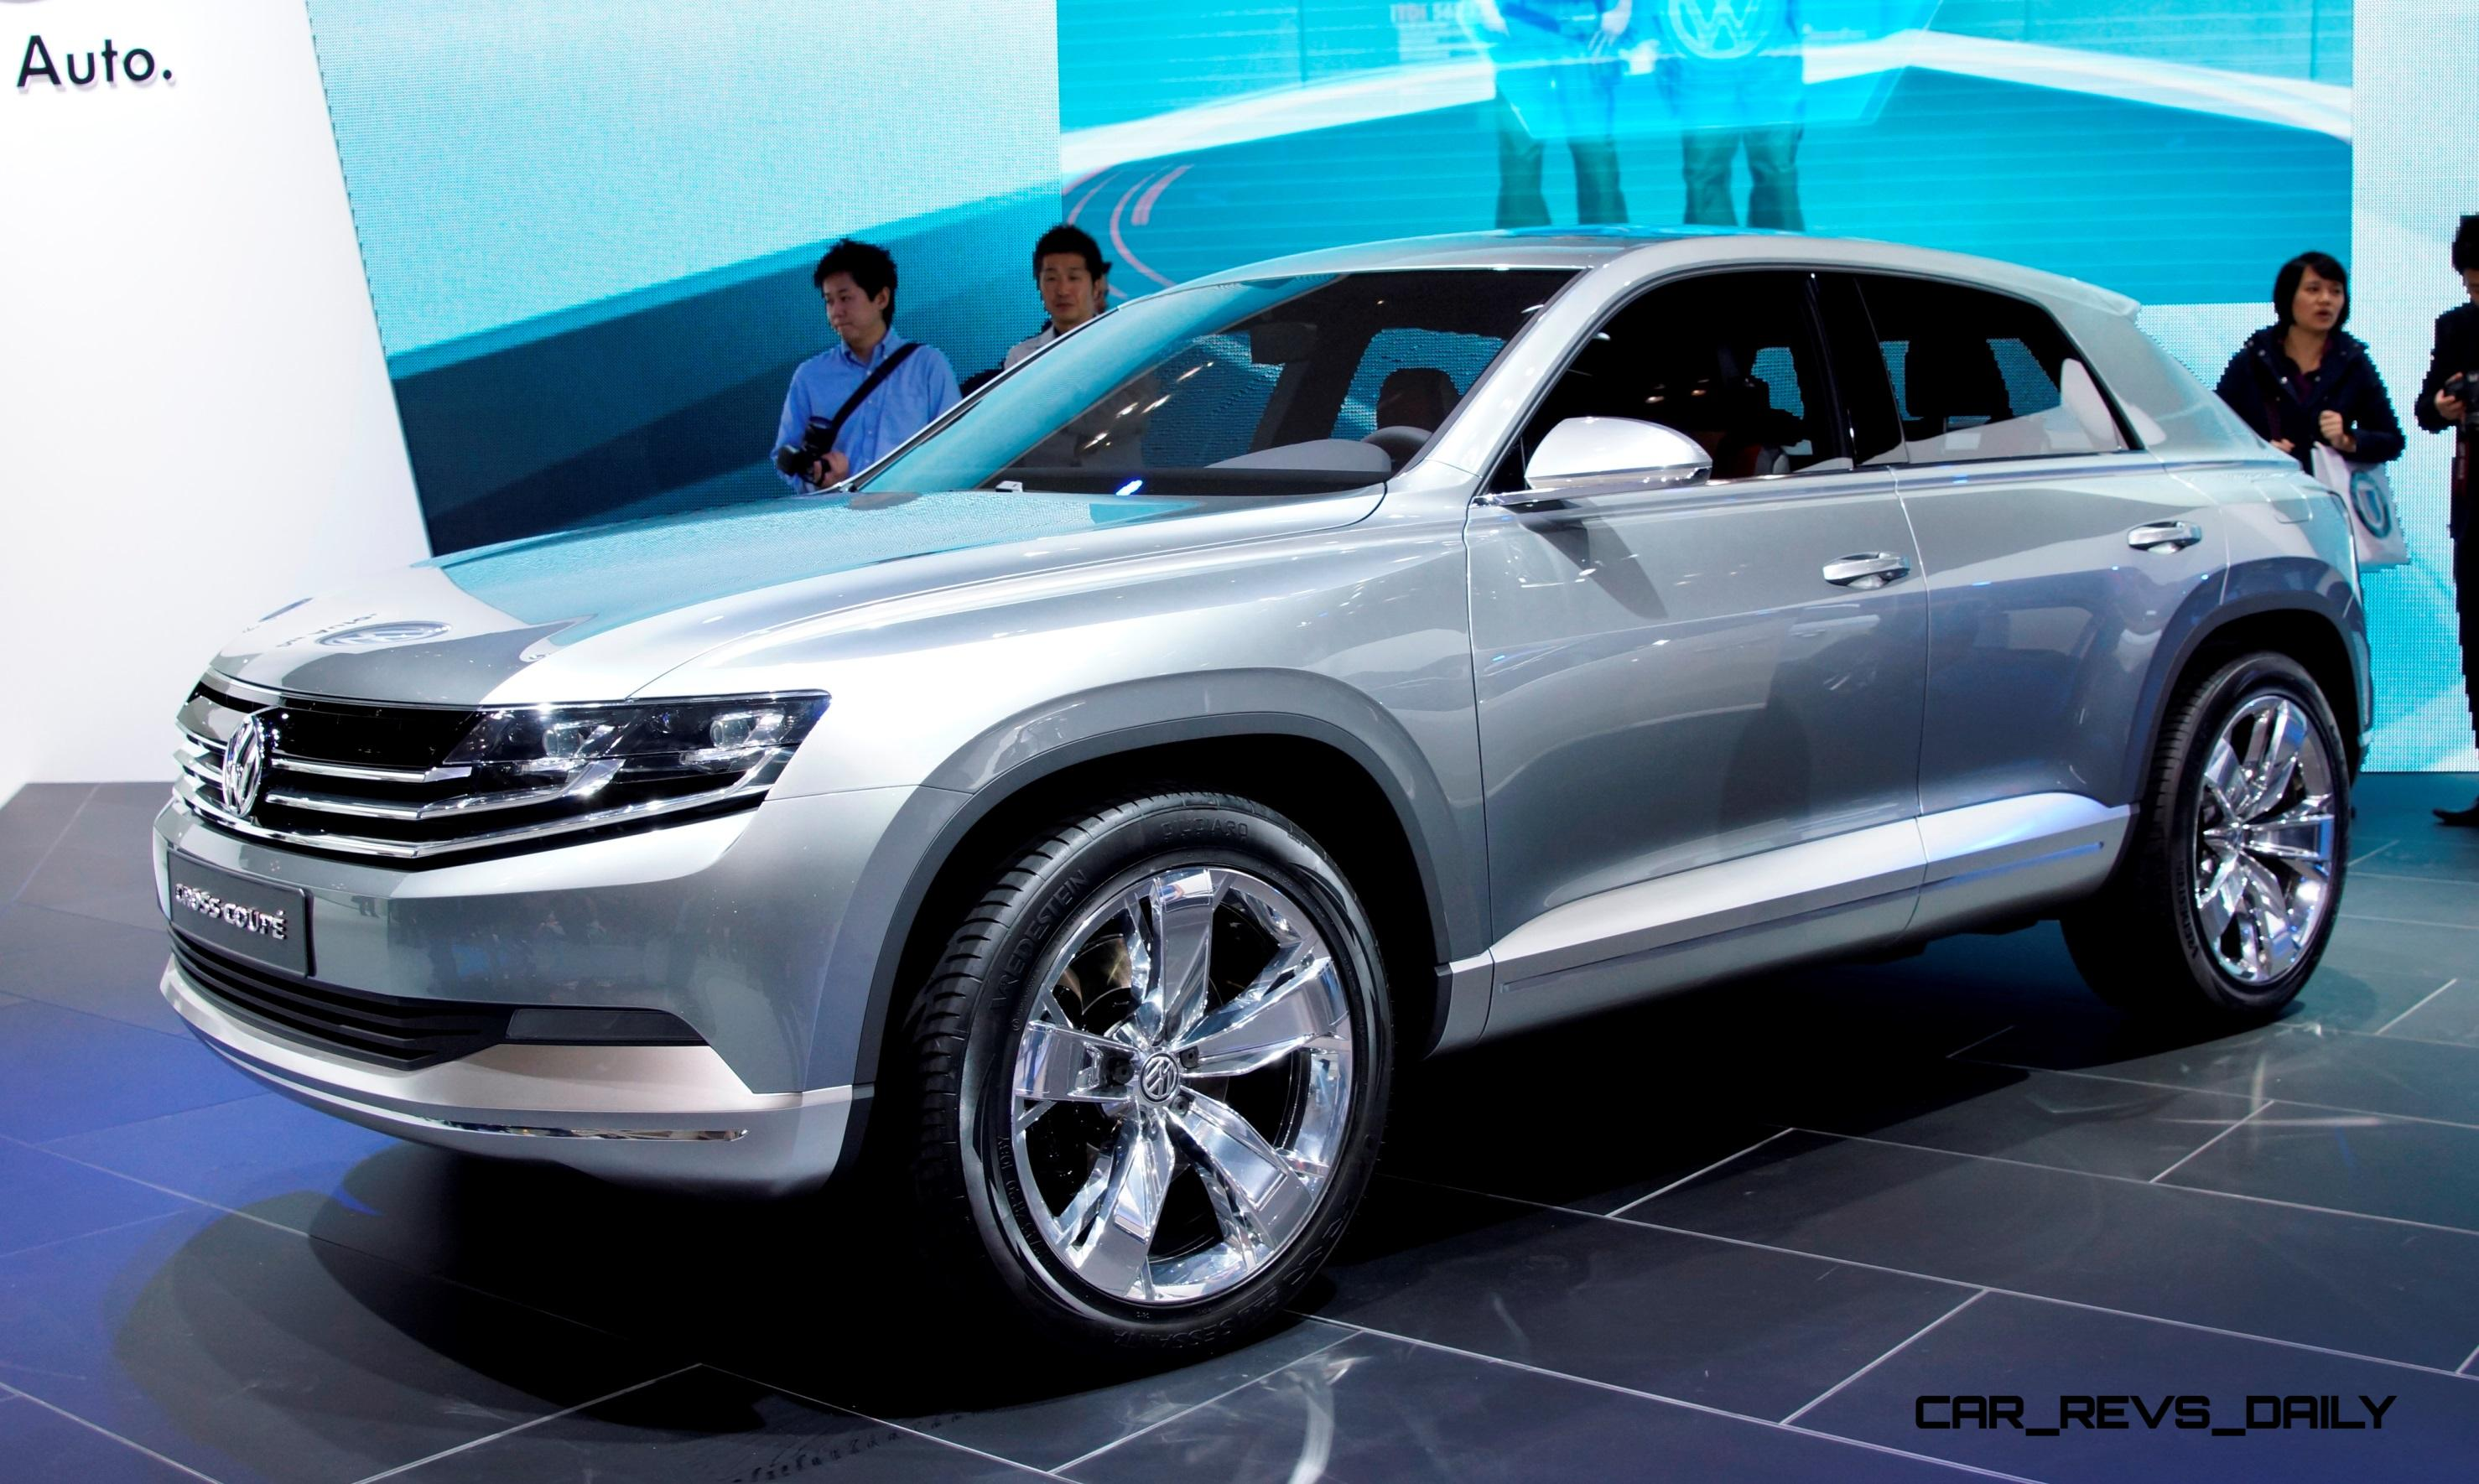 2011 Volkswagen Cross Coupe SUV Concept is Future MQB-Sized BMW X4 Competitor